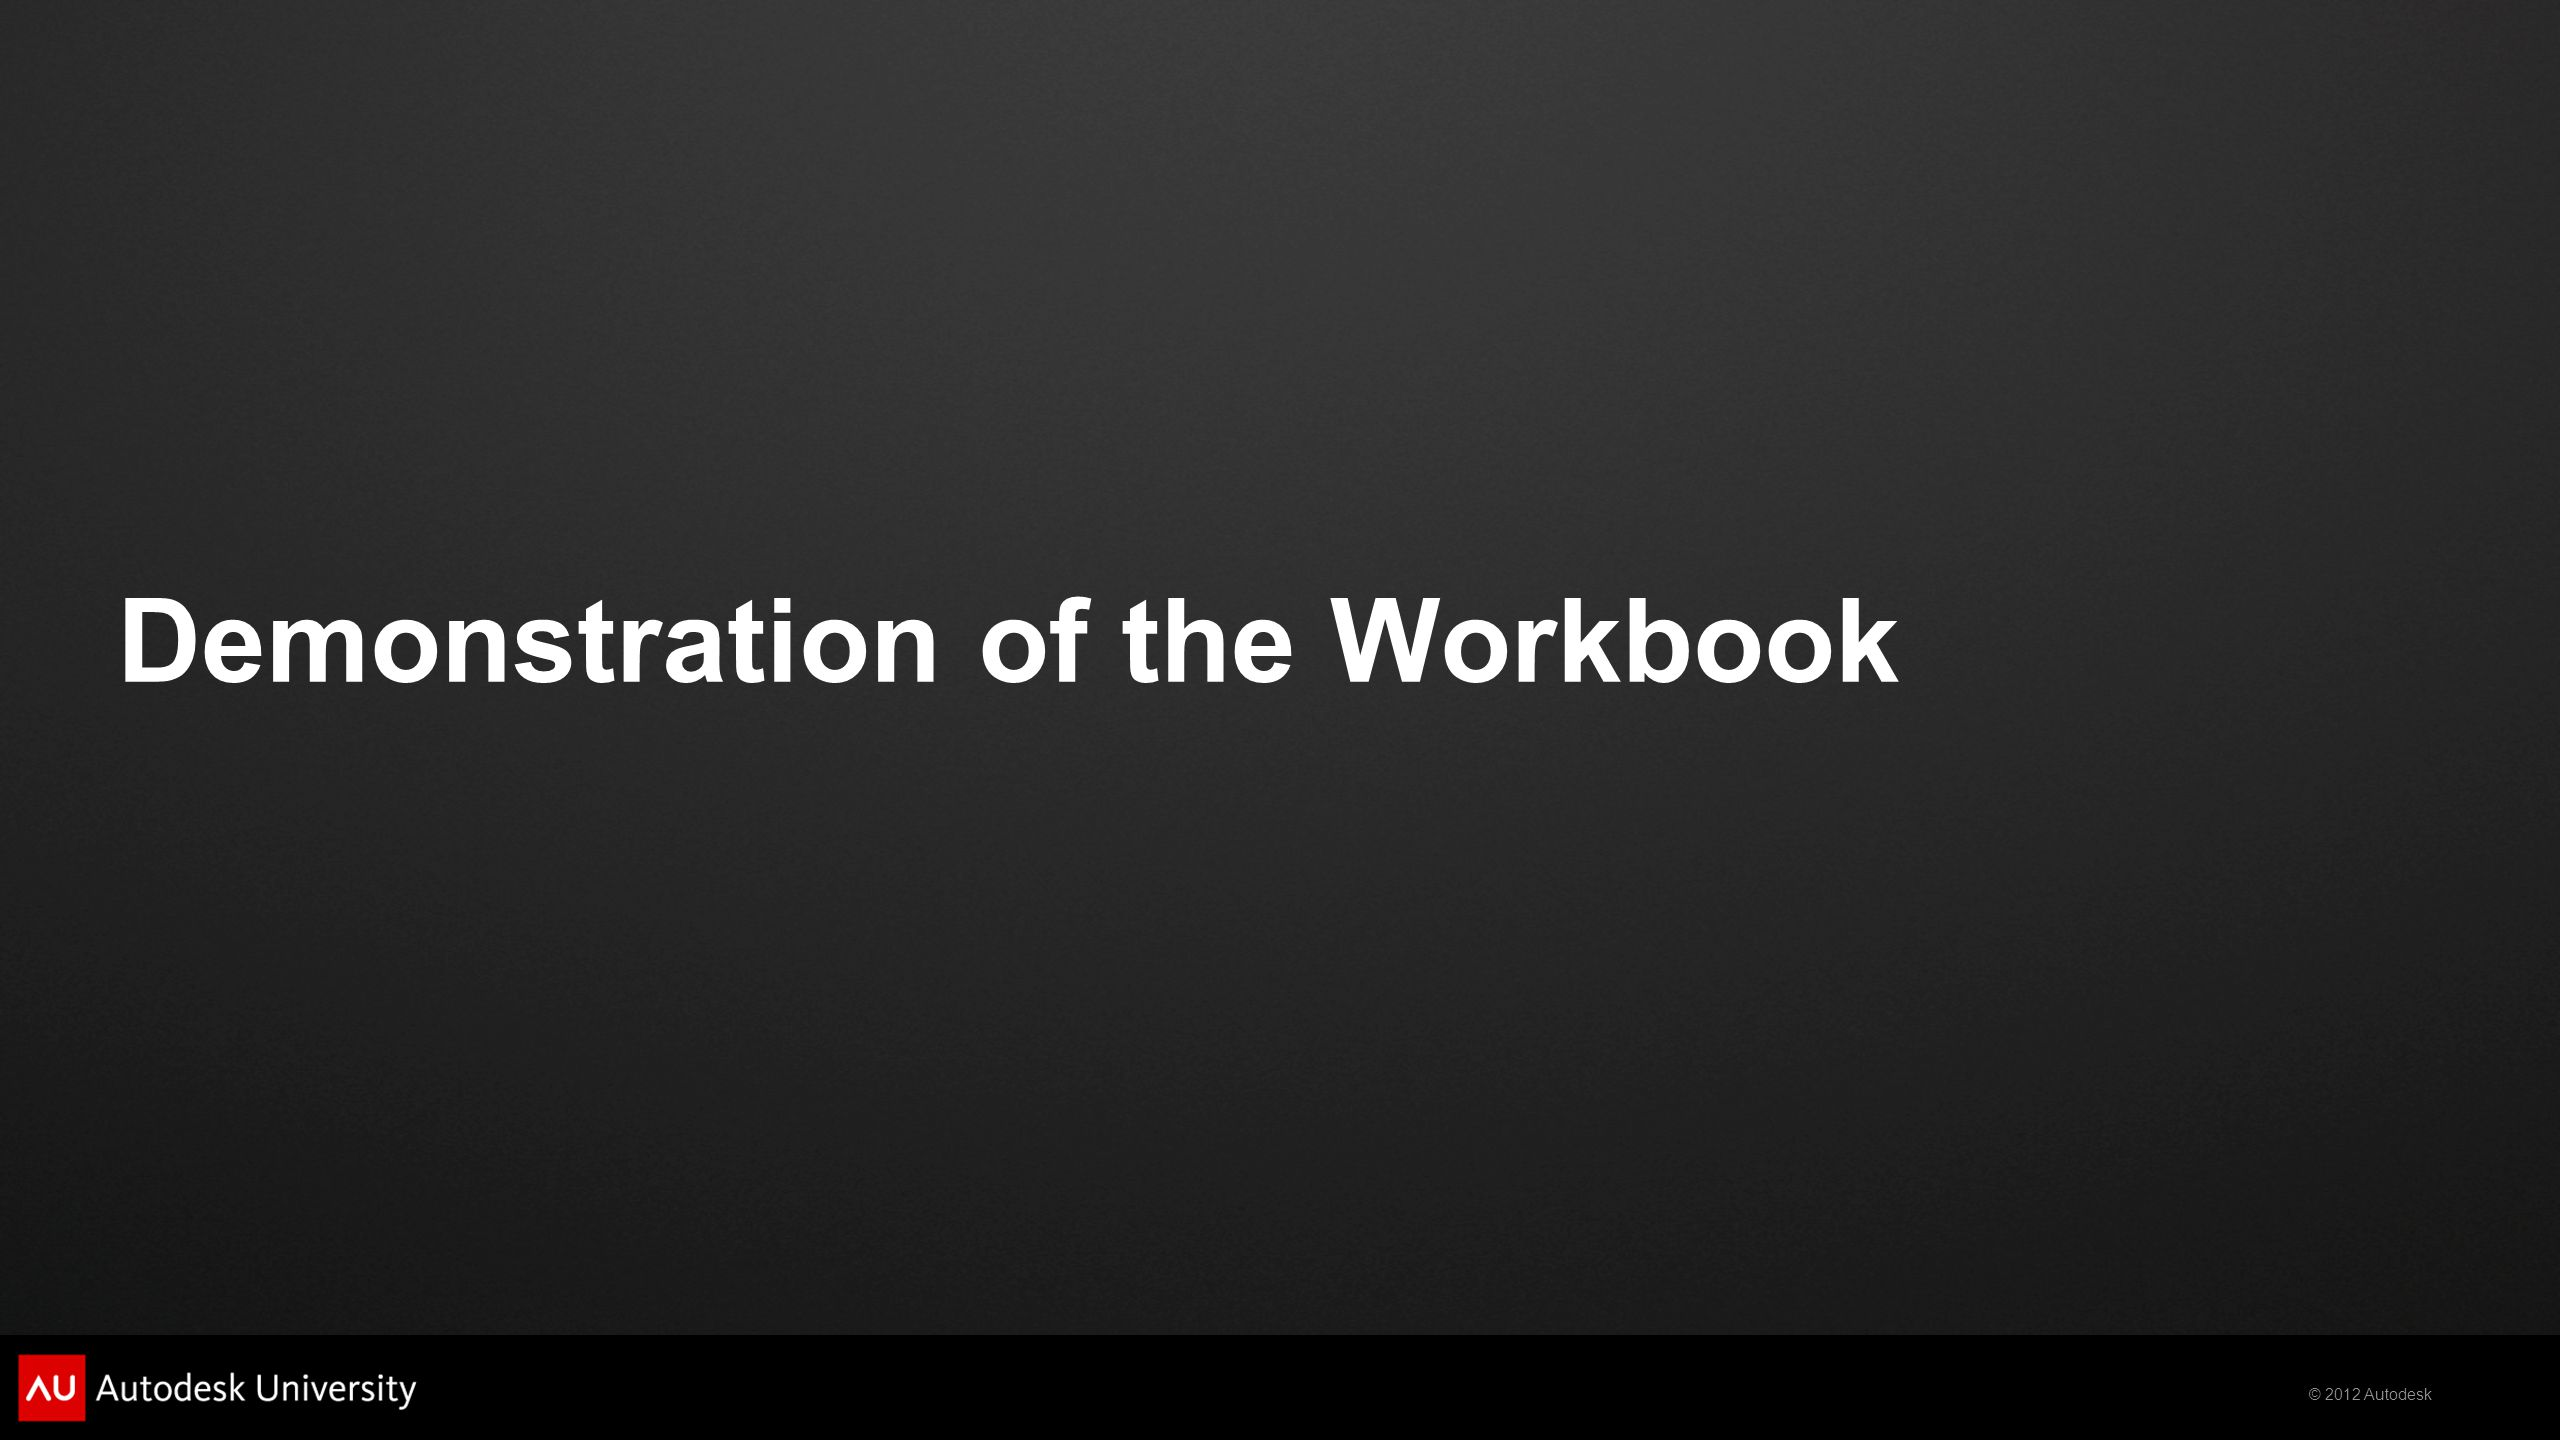 Demonstration of the Workbook